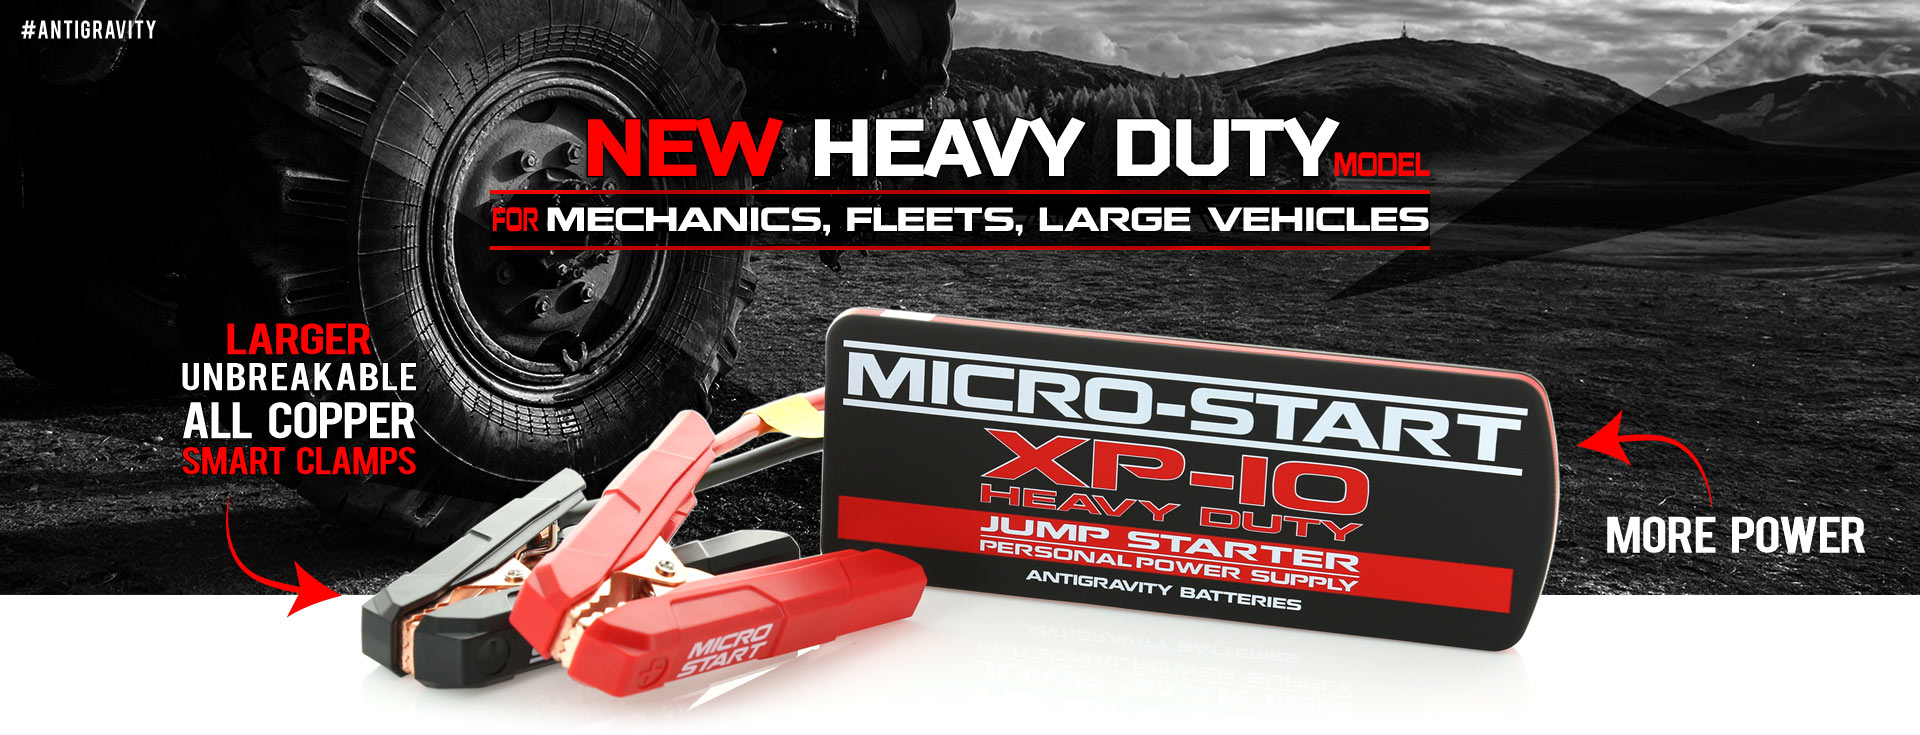 Heavy Duty XP10 HD Kit, New Product!